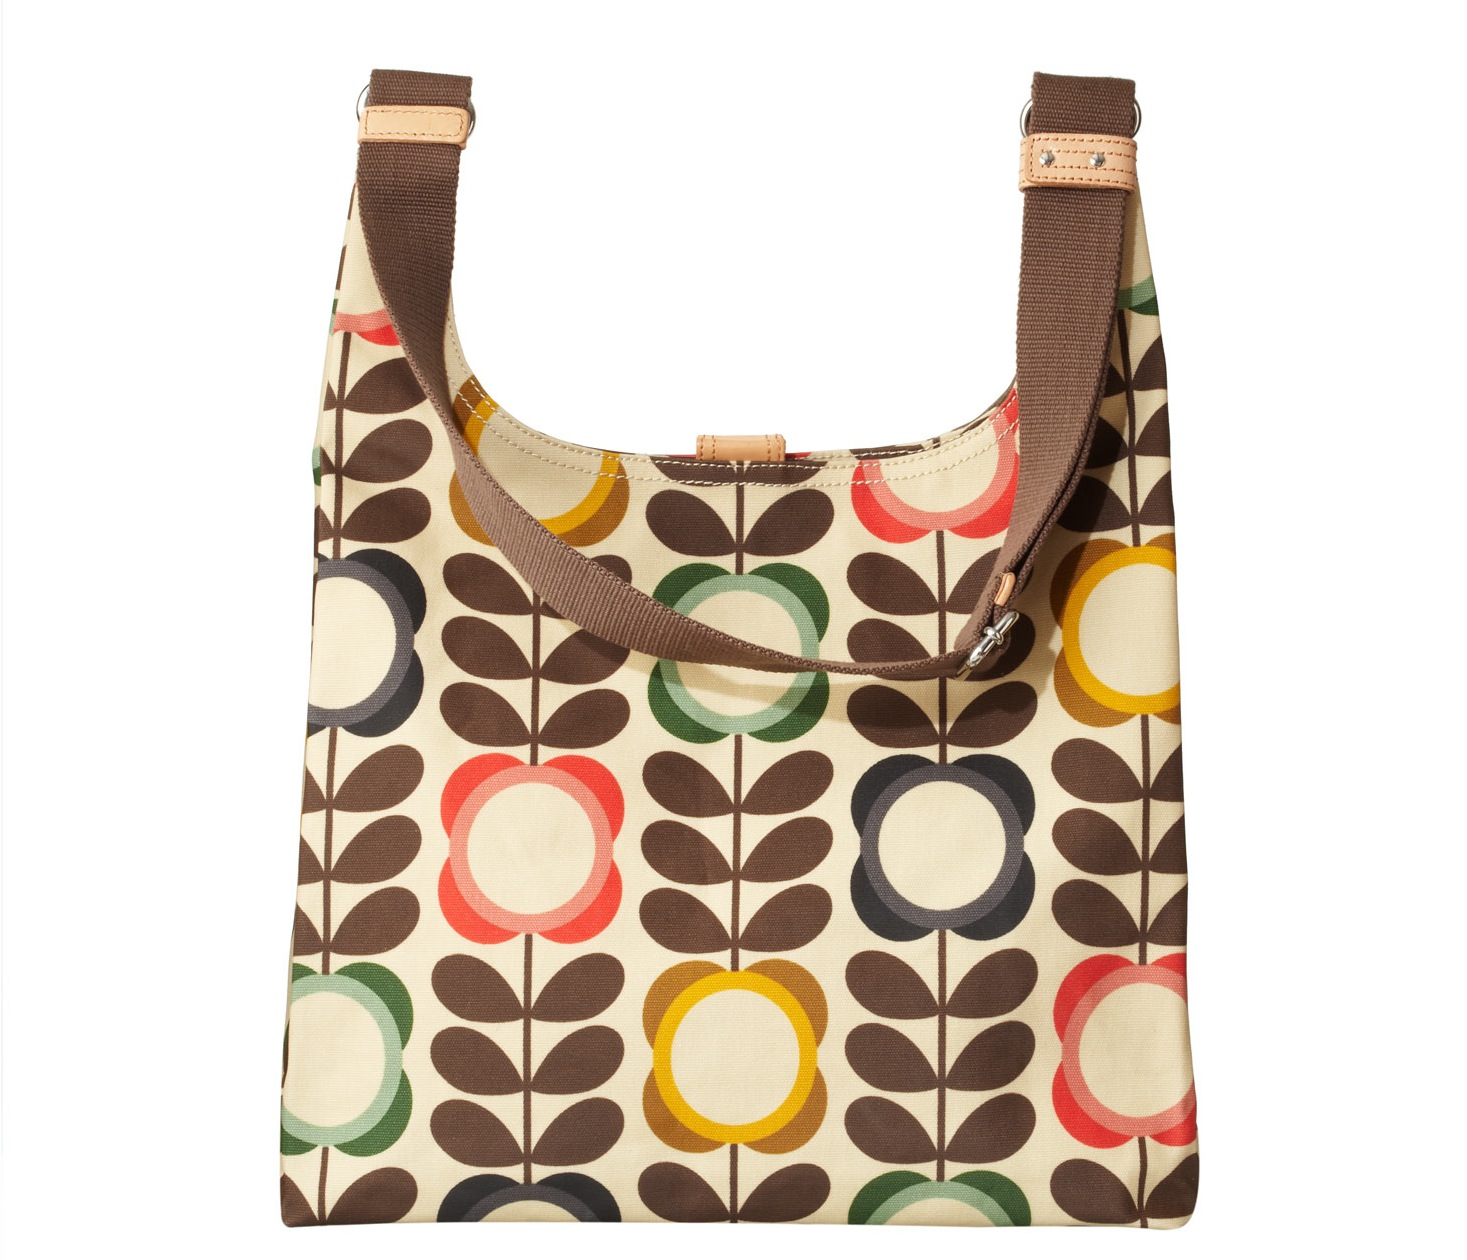 Or just an Orla Kiely with pretty floral prints. (I had to.)